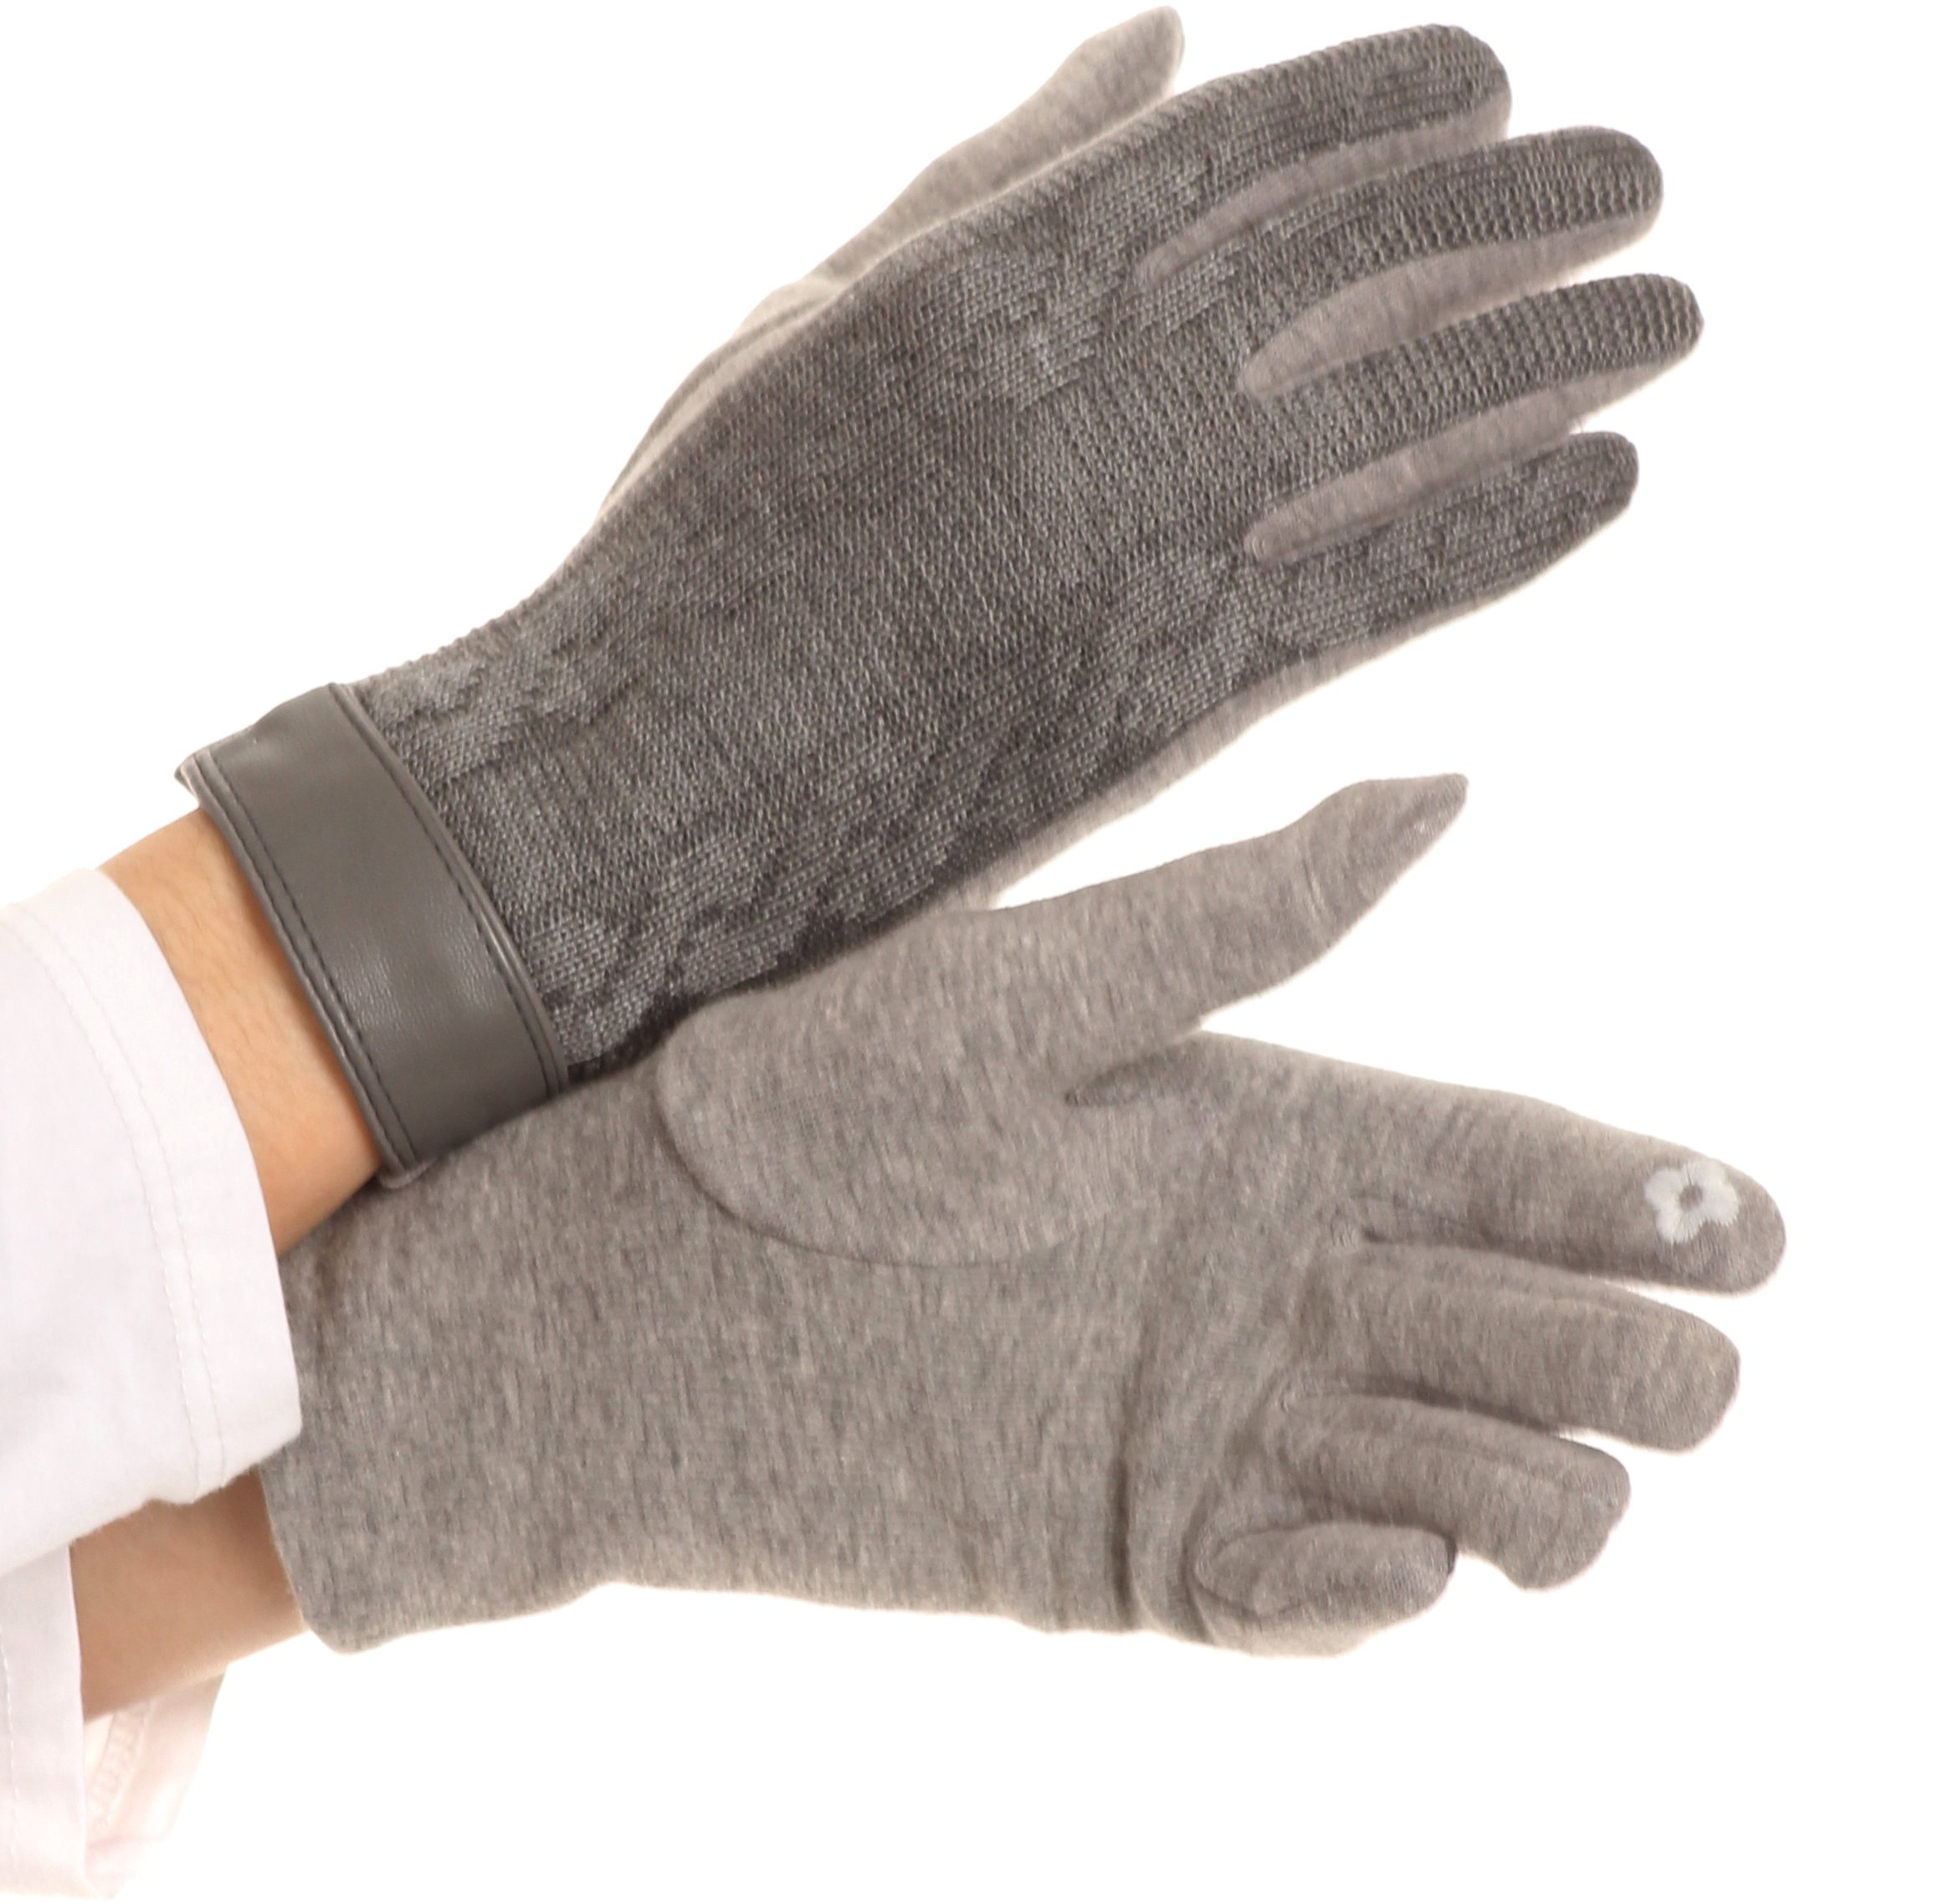 Sakkas 16167 - Rayanne Soft Classic Knit Faux Leather Wrist Band Touch Screen Warm Gloves - Grey - L/XL